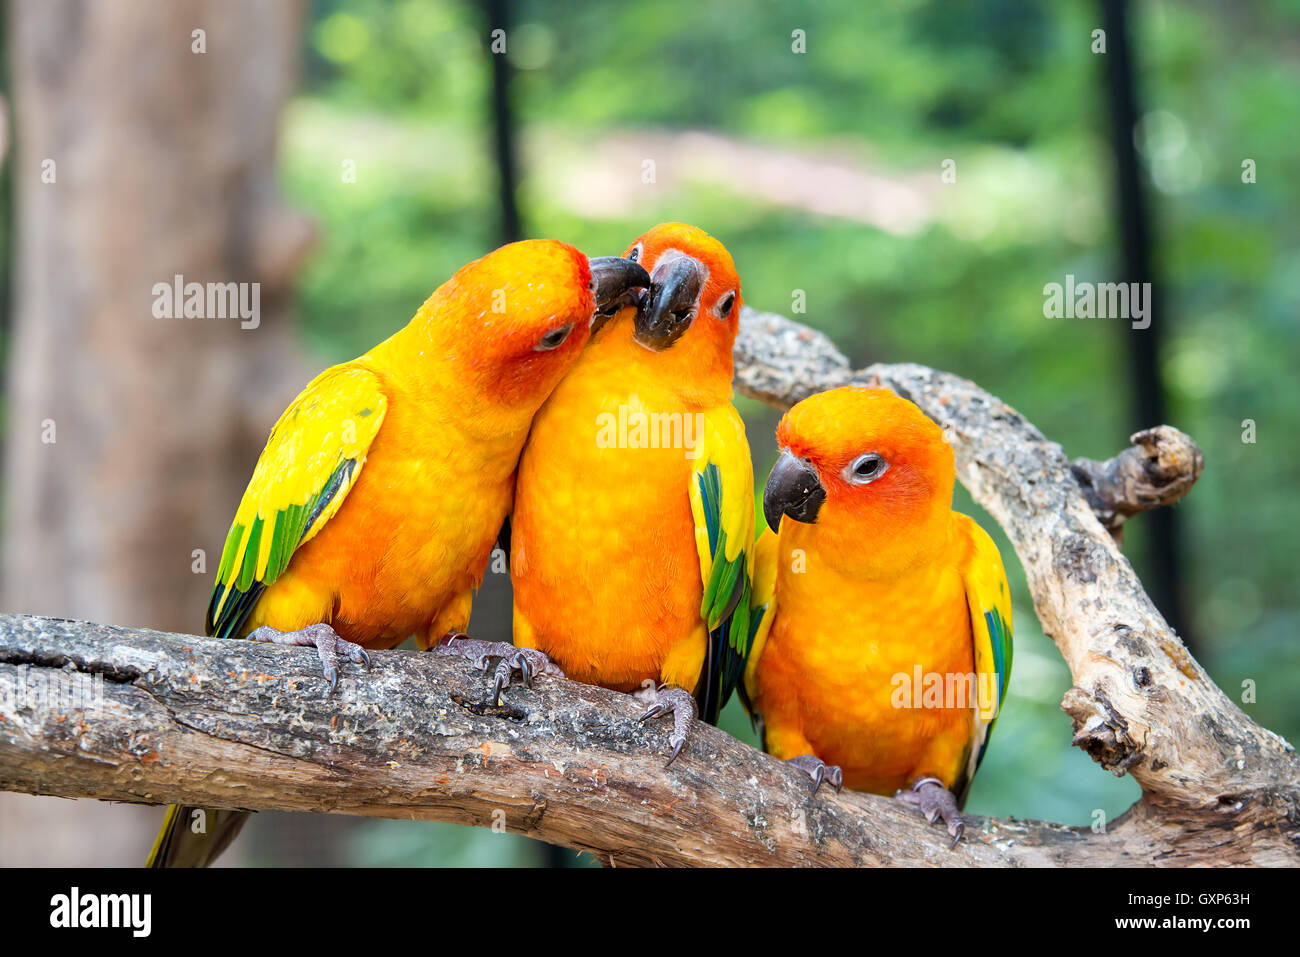 Three sunconure bird perch in wood branch in forest. Sunconure bird interacting. - Stock Image